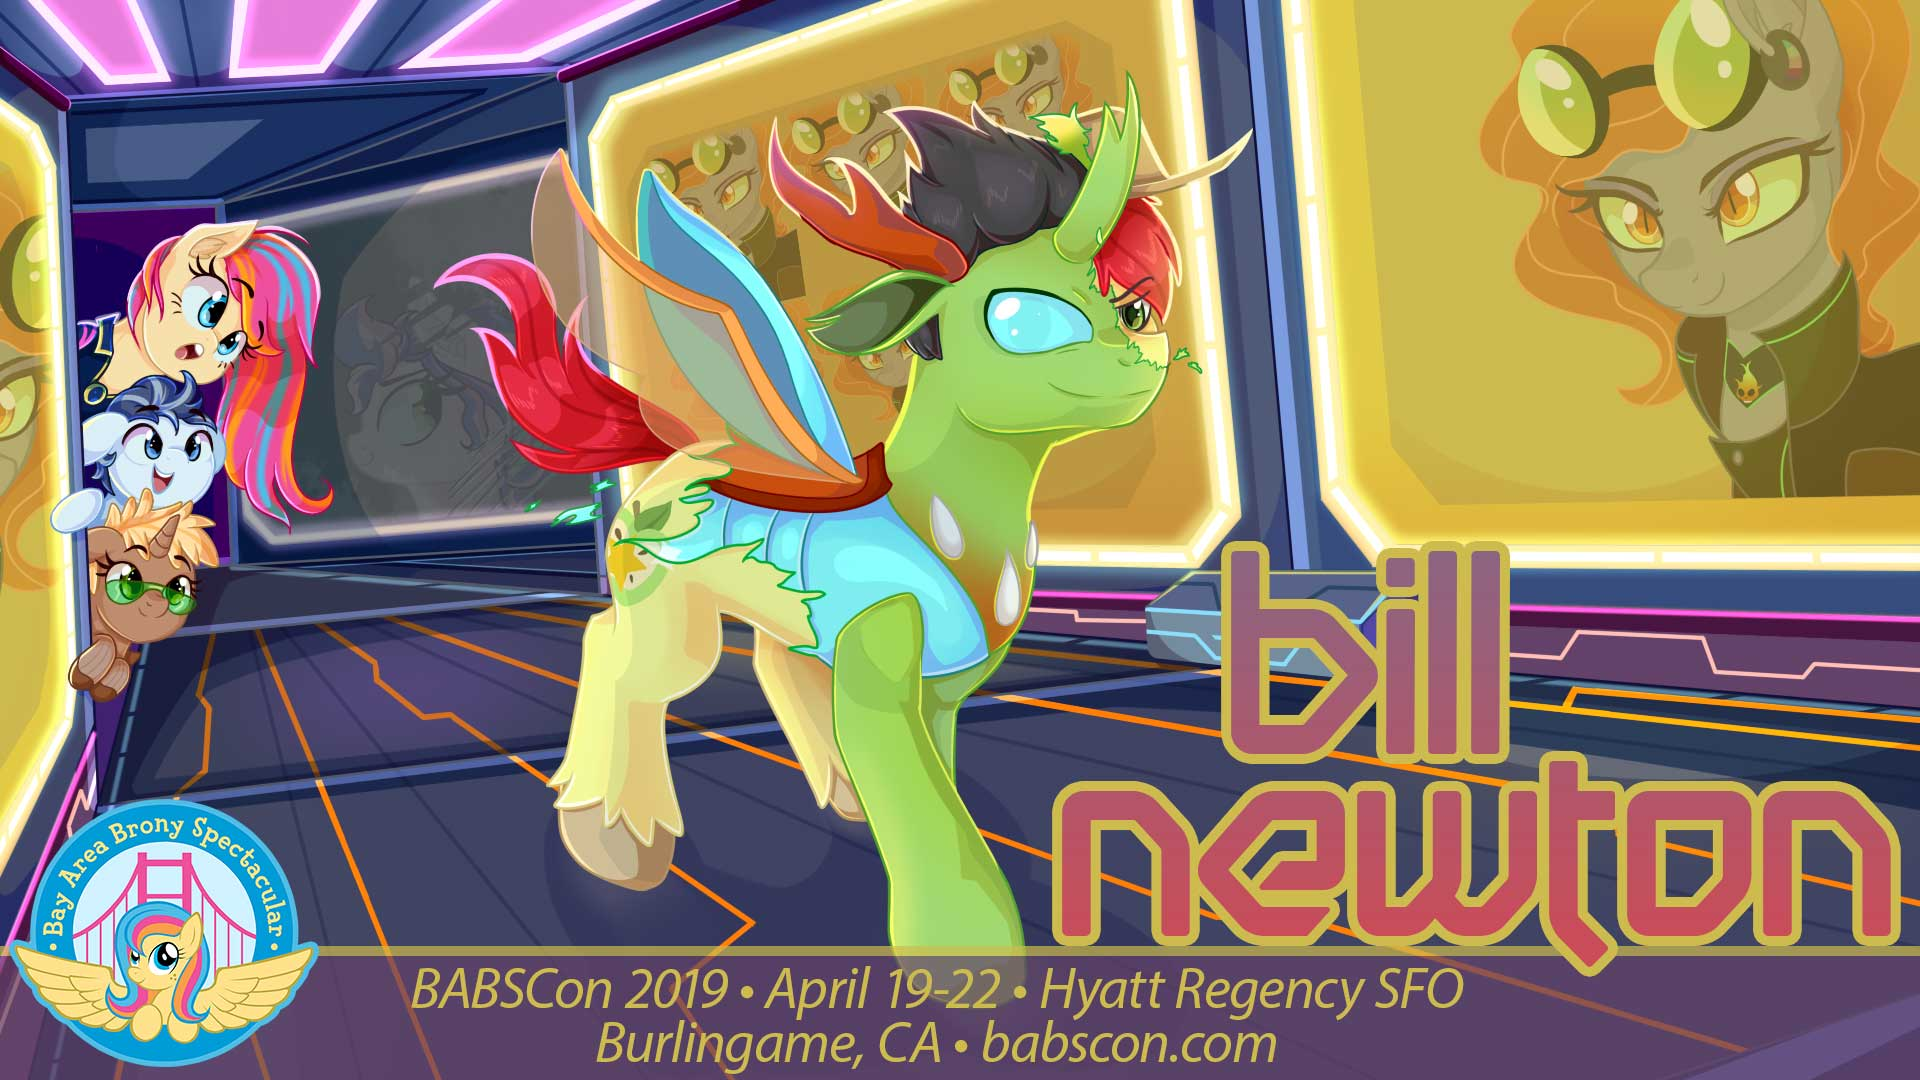 BABSCon 2019 Makes a Bright Move with Bill Newton